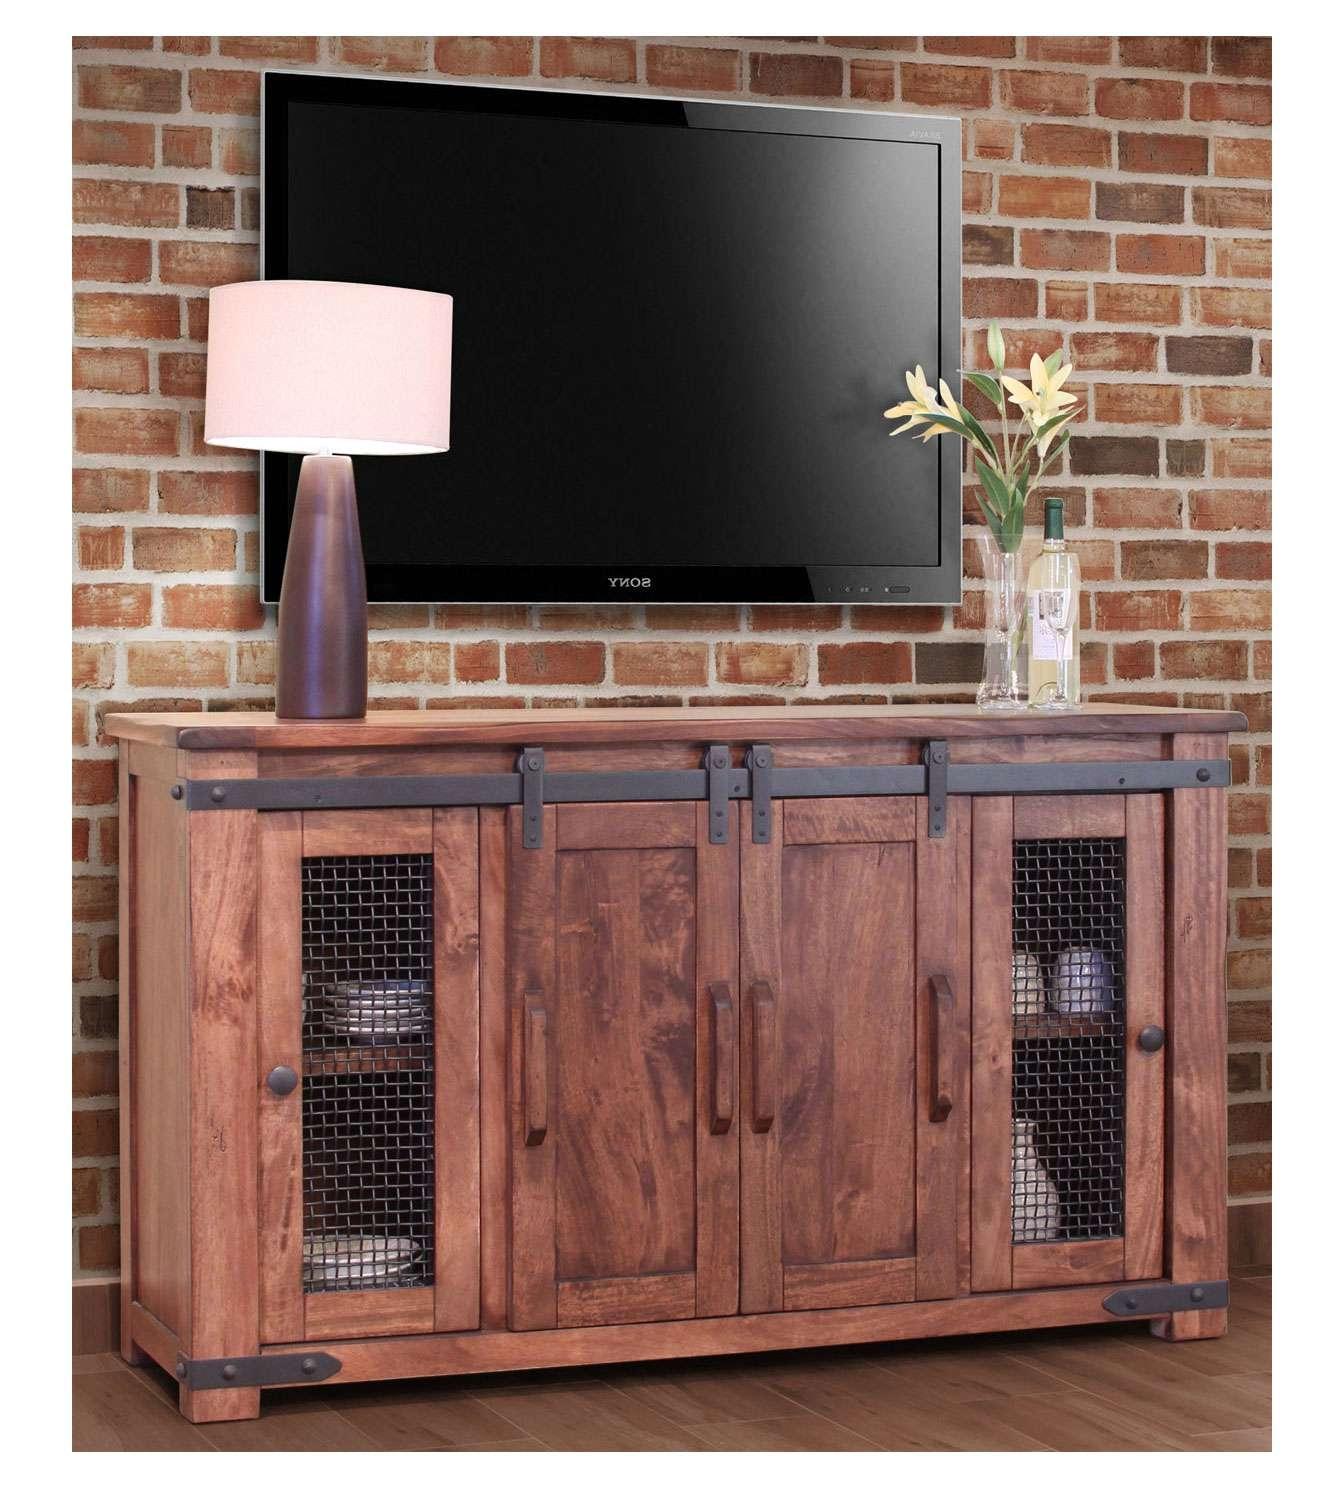 Tv : Rustic Red Tv Stands Delight Rustic Red Tv Stands' Compelling In Red Tv Cabinets (View 10 of 20)